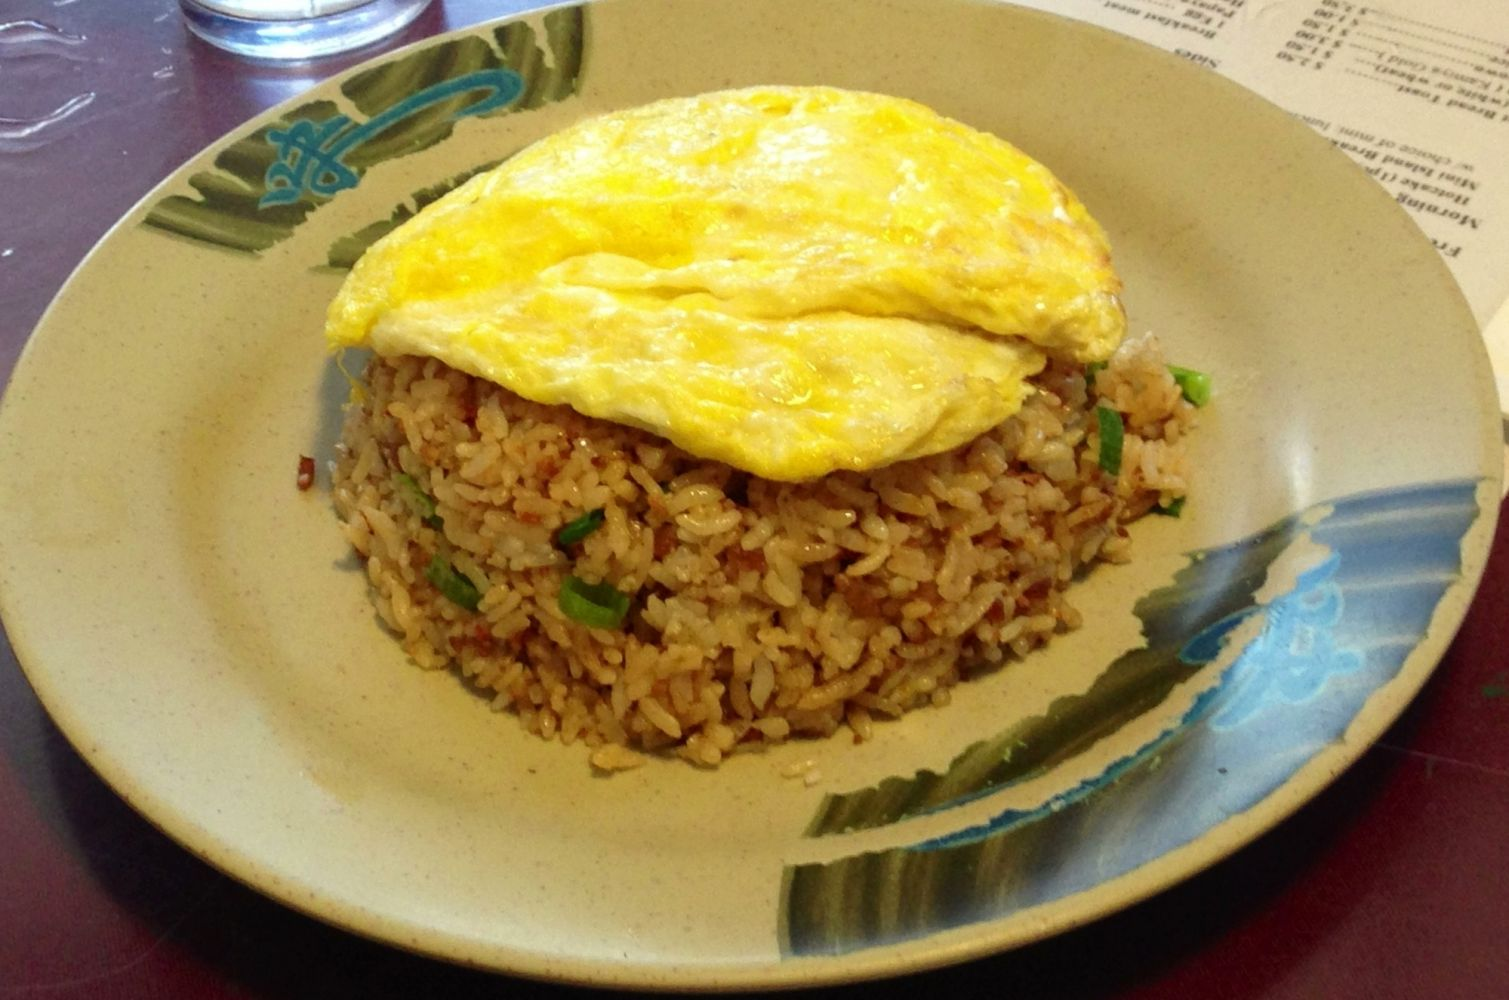 One of our traditional dishes, Ono fried rice topped with egg at Asahi Grill Ward in Honolulu, Hawaii